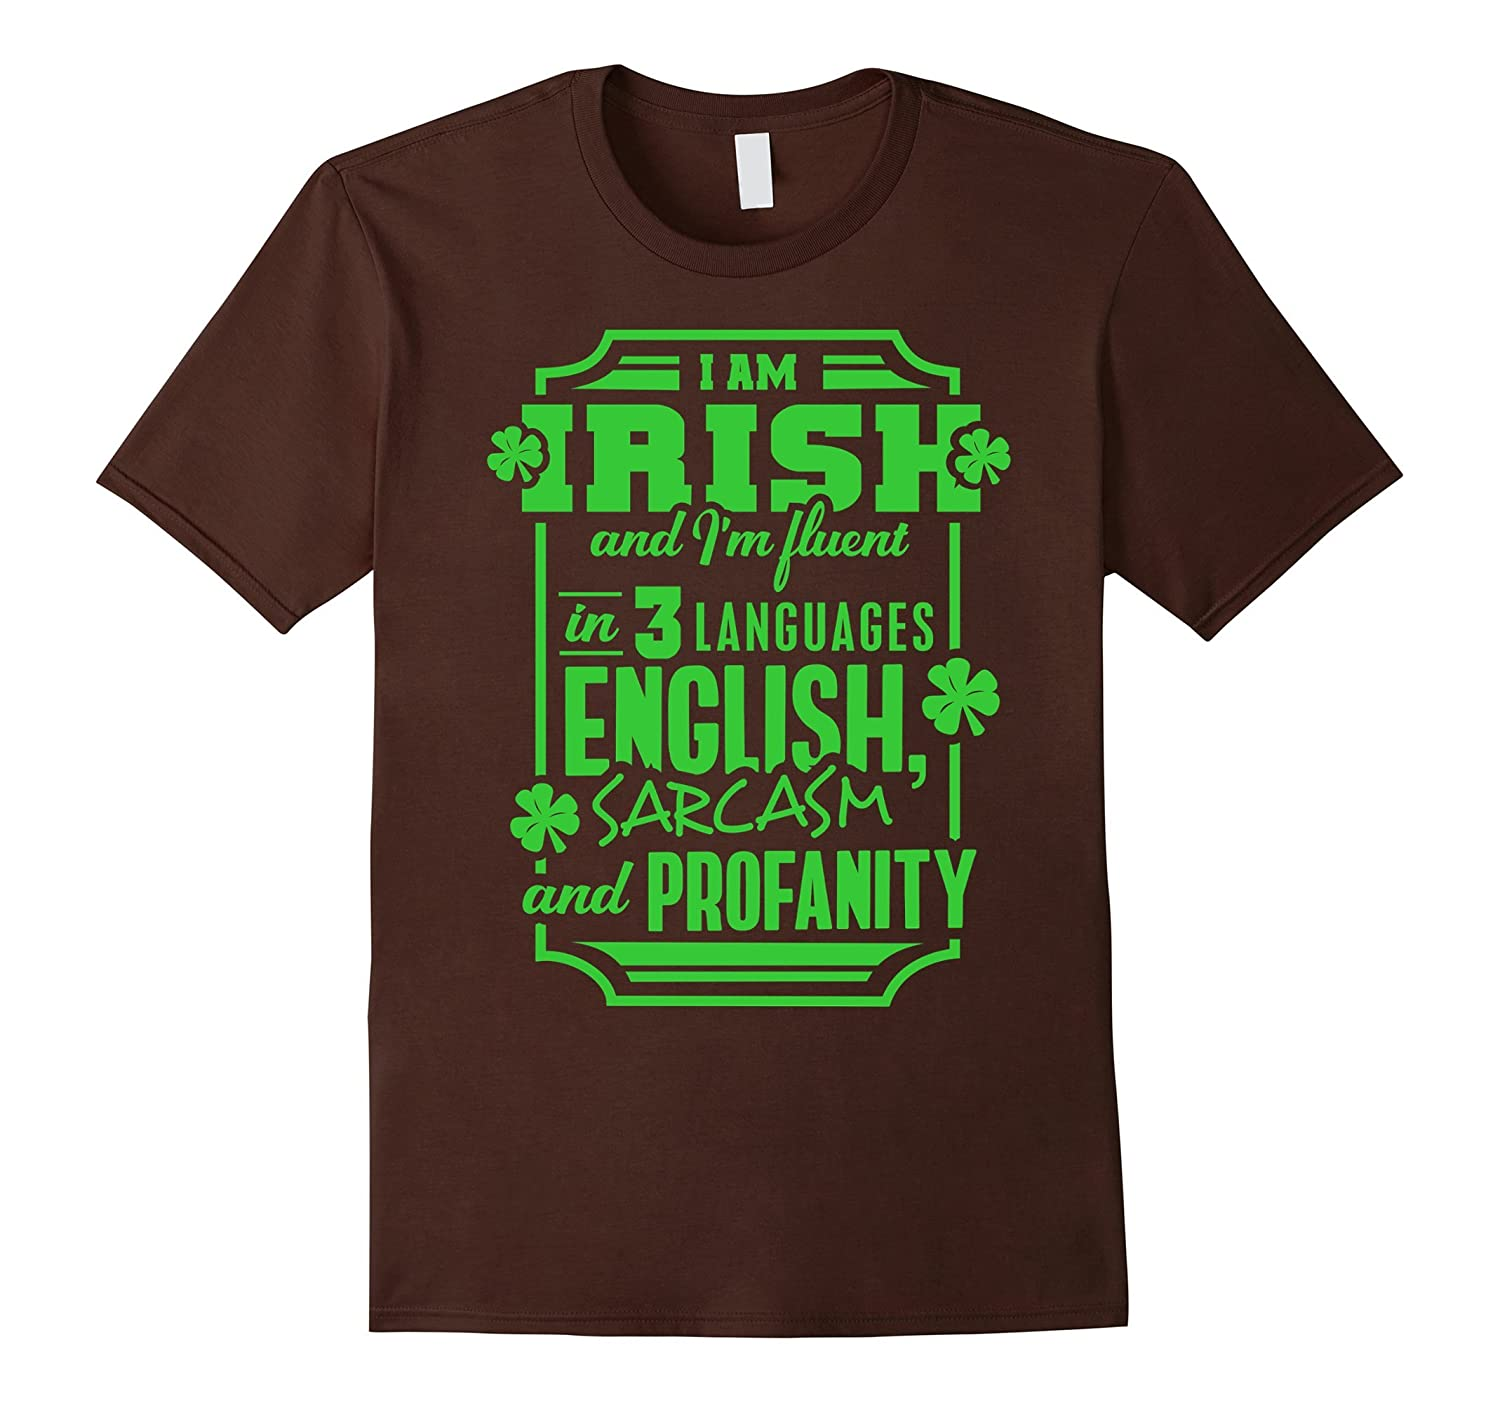 I'm Irish St Patrick's Day Funny T-shirt for Men & Women-CL